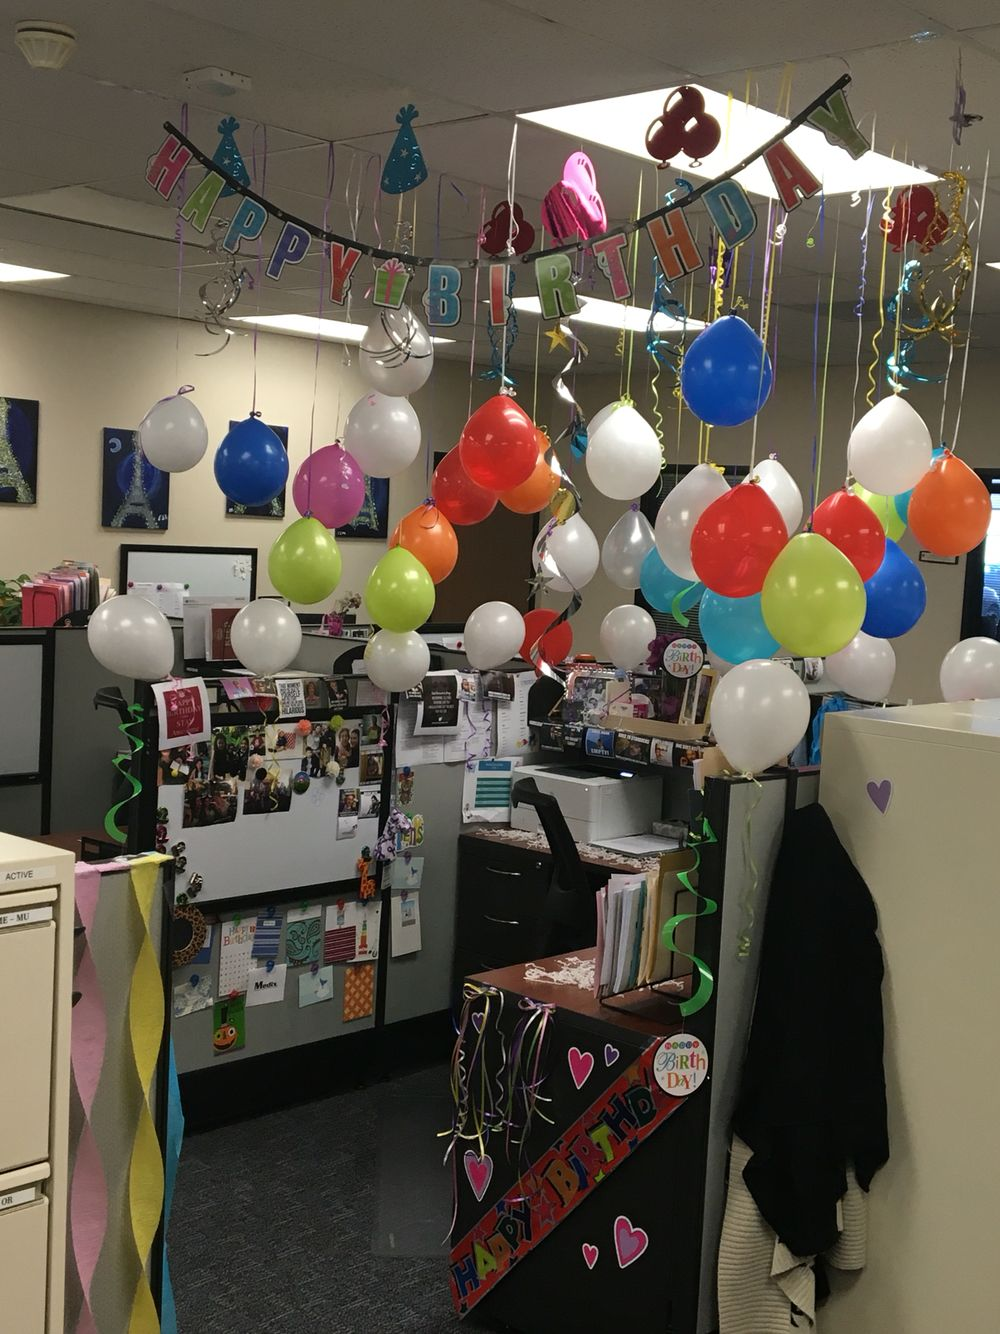 Cubicle birthday decoration work life events and for Fun office decorating ideas